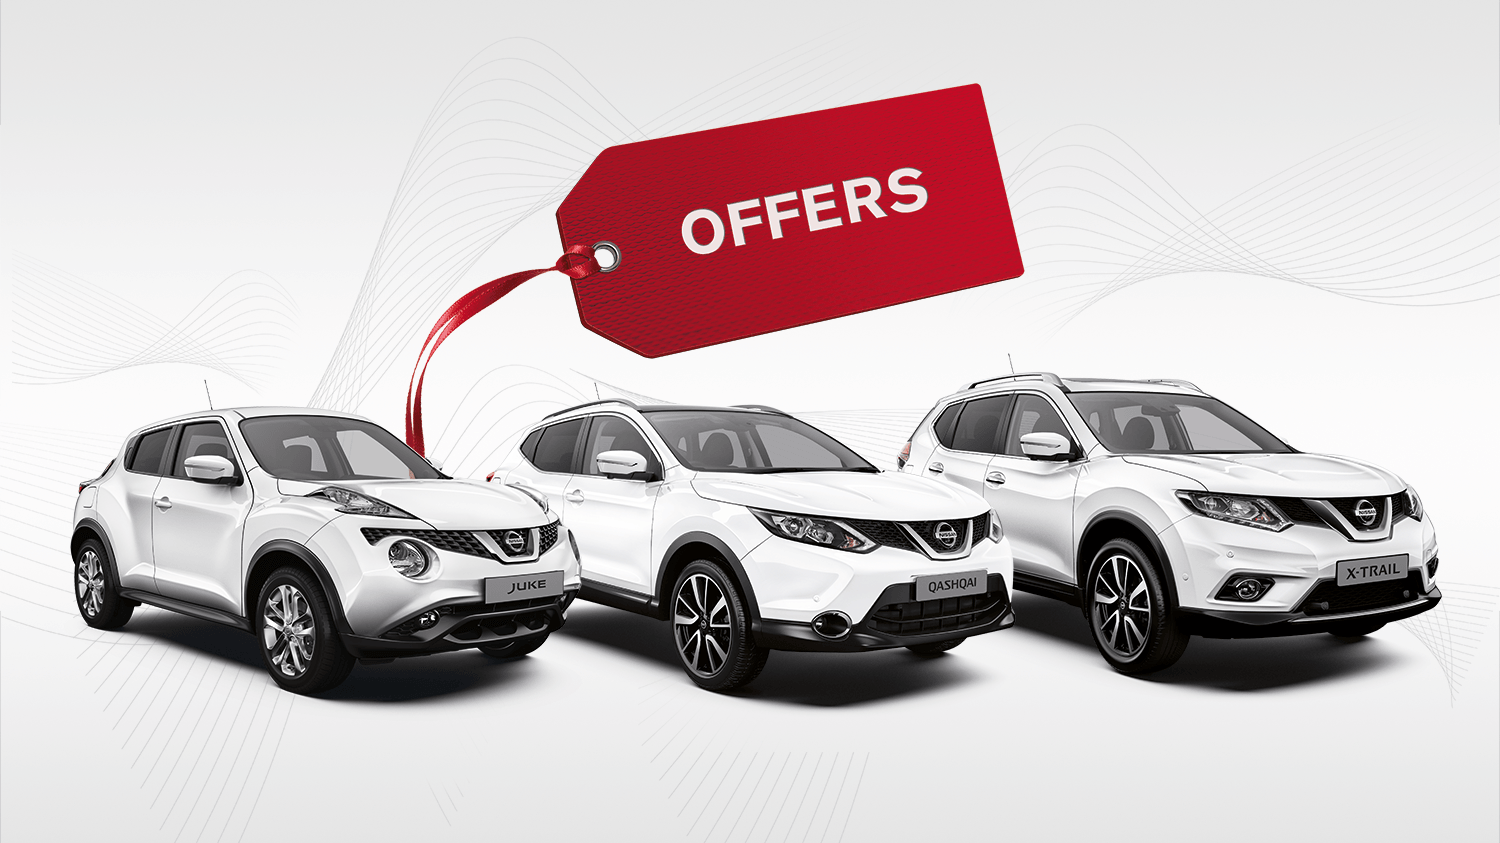 Explore the latest offers